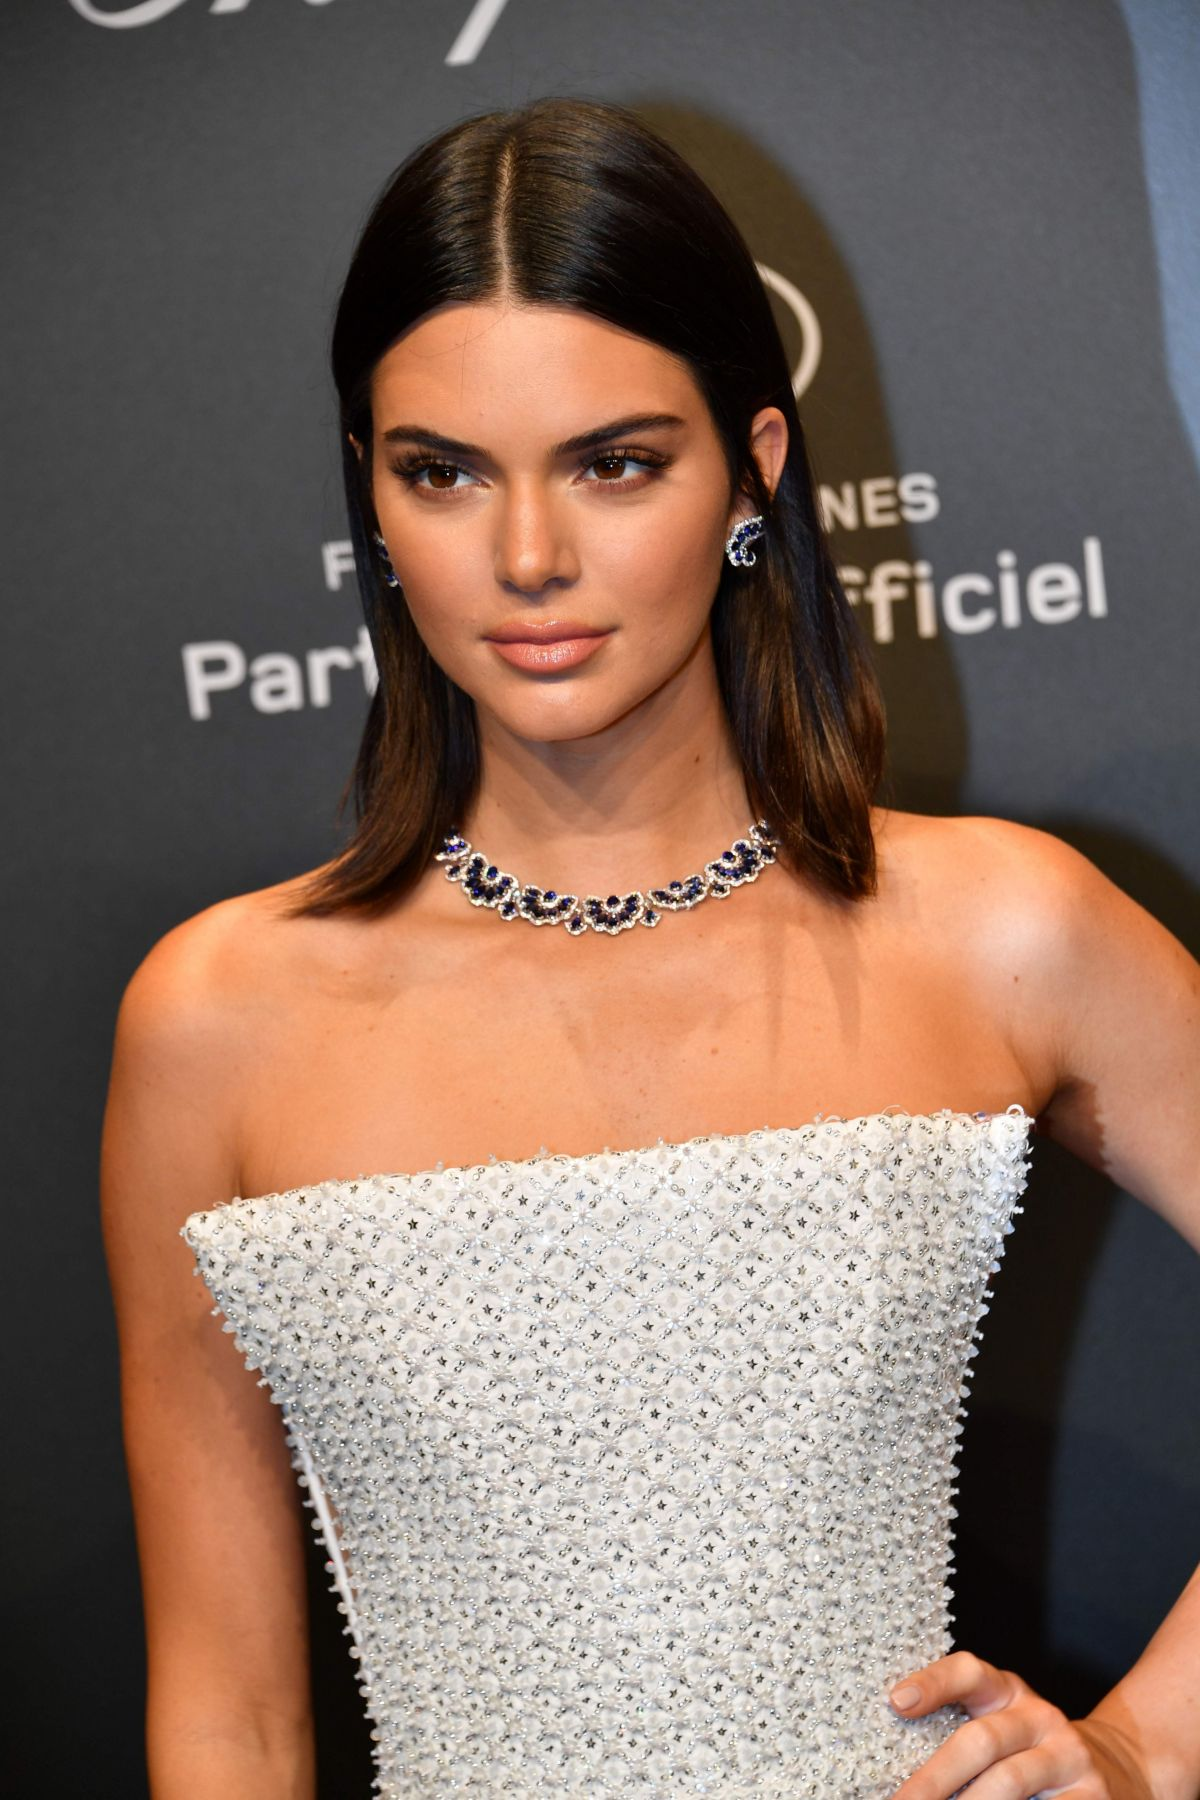 Kendall Jenner at the 2017 Cannes Film Festival. Image courtesy of hawtcelebs.com